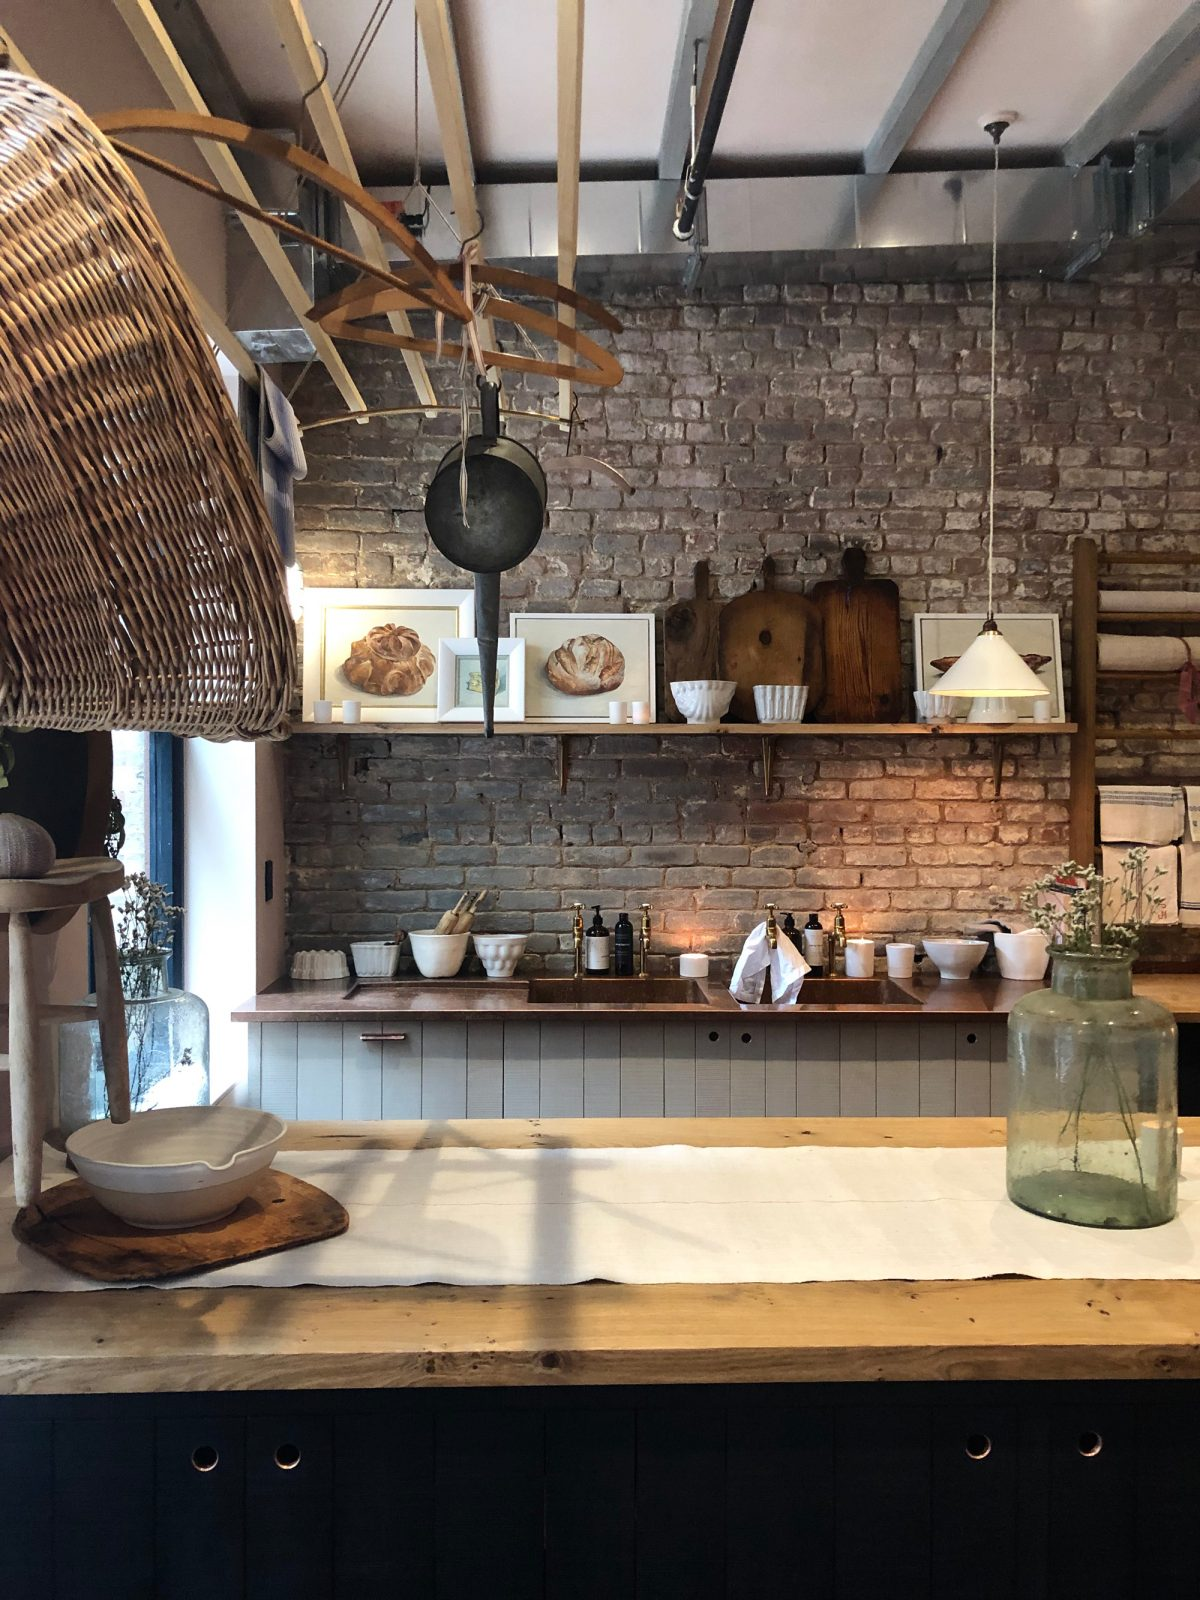 Beautifully rustic European country style kitchen design details in deVOL's Bond Street New York showroom. #rustickitchen #devol #europeancountry #kitchendesign #bespokekitchen